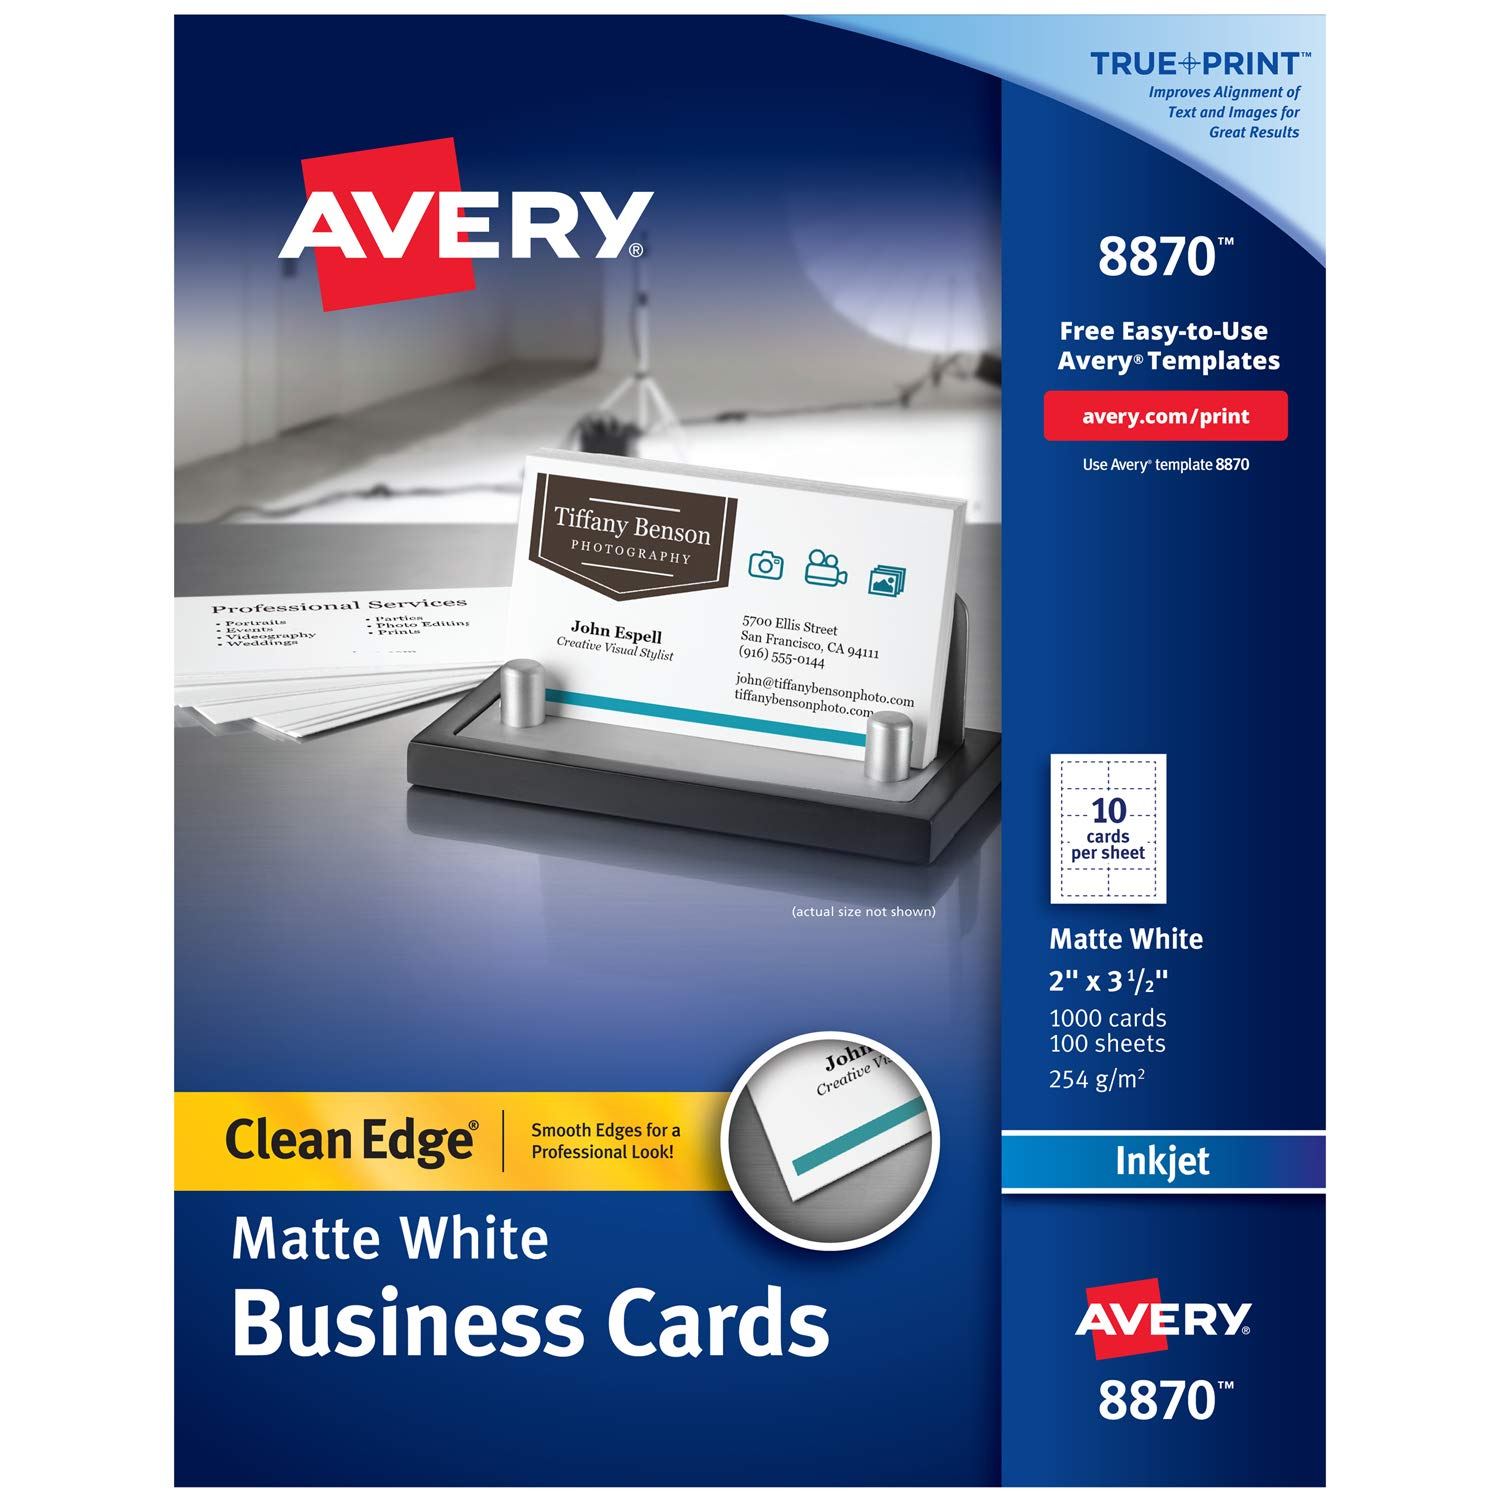 Avery Printable Business Cards, Inkjet Printers, 1,000 Cards, 2 x 3.5, Clean Edge, Heavyweight (8870)